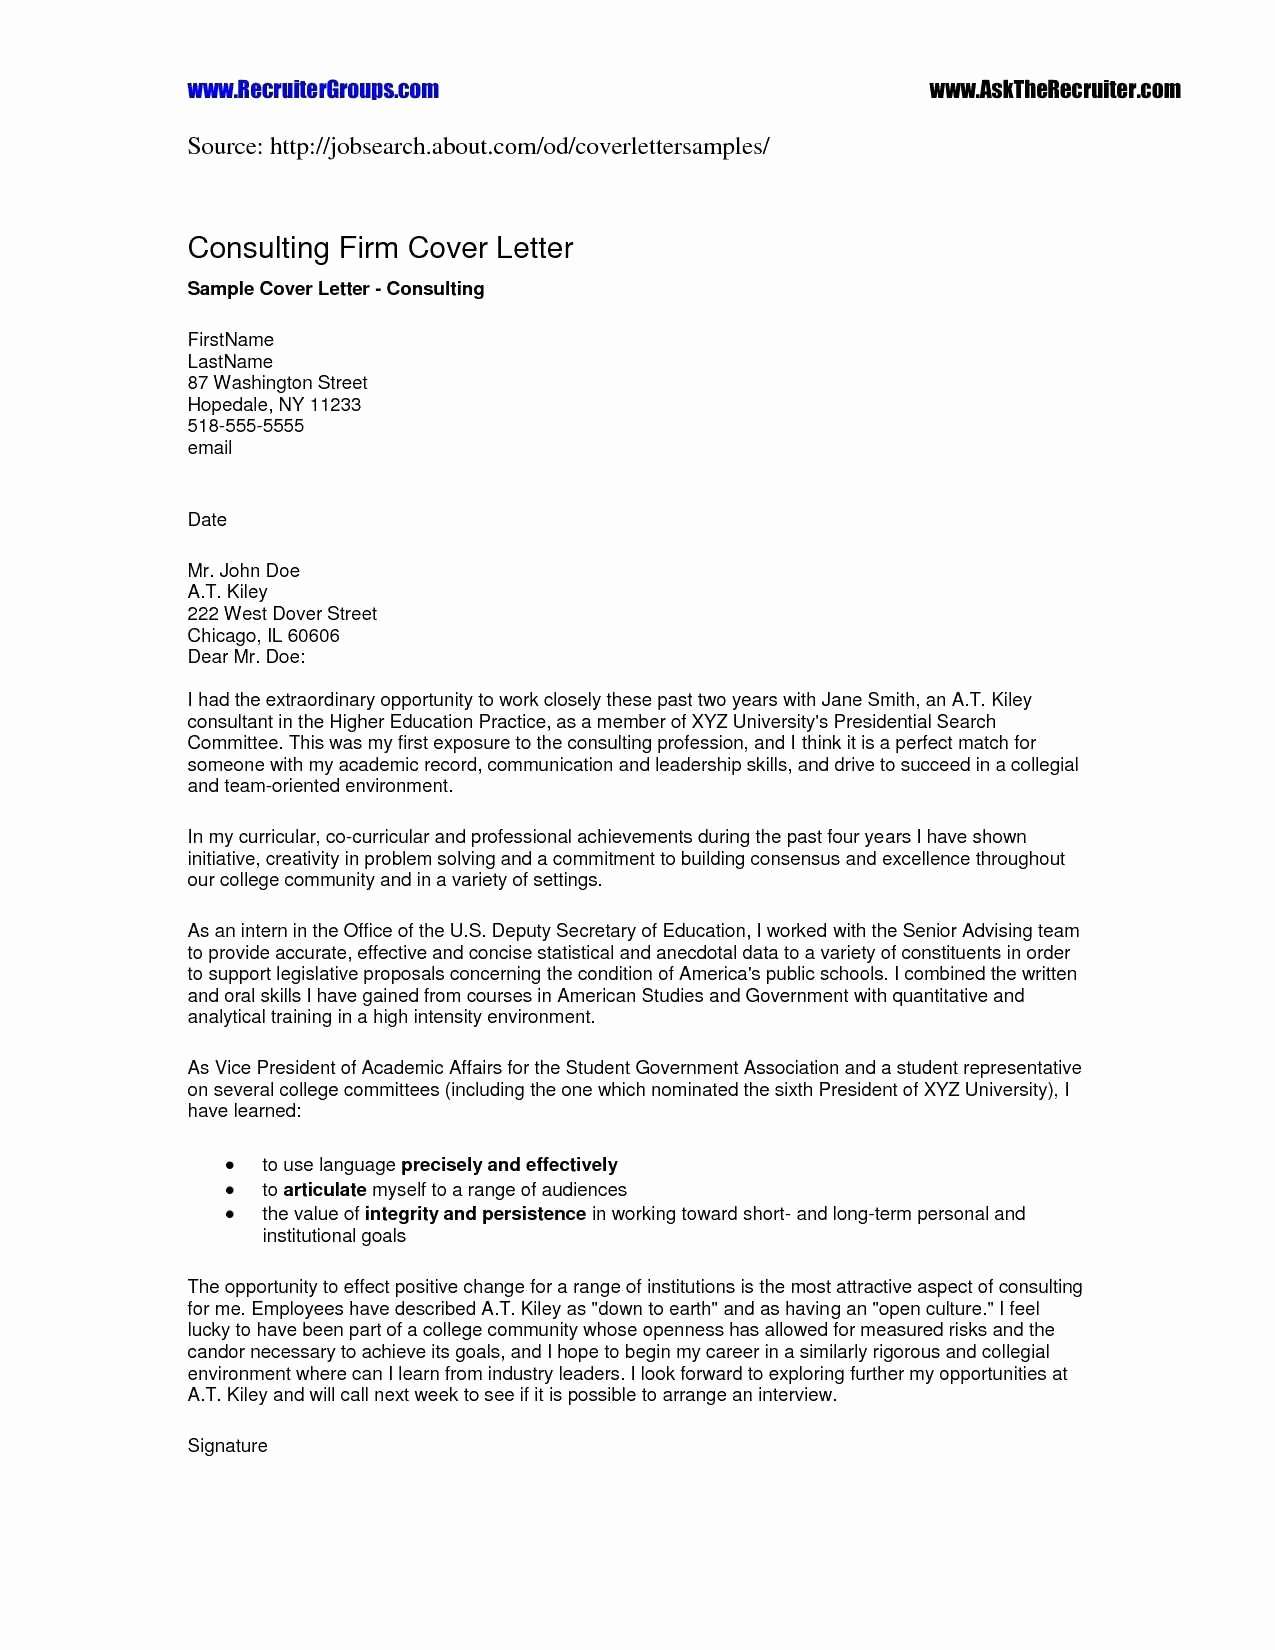 Transfer Of Ownership Agreement Template Luxury Llc Transfer Of Ownership Agreement Sample